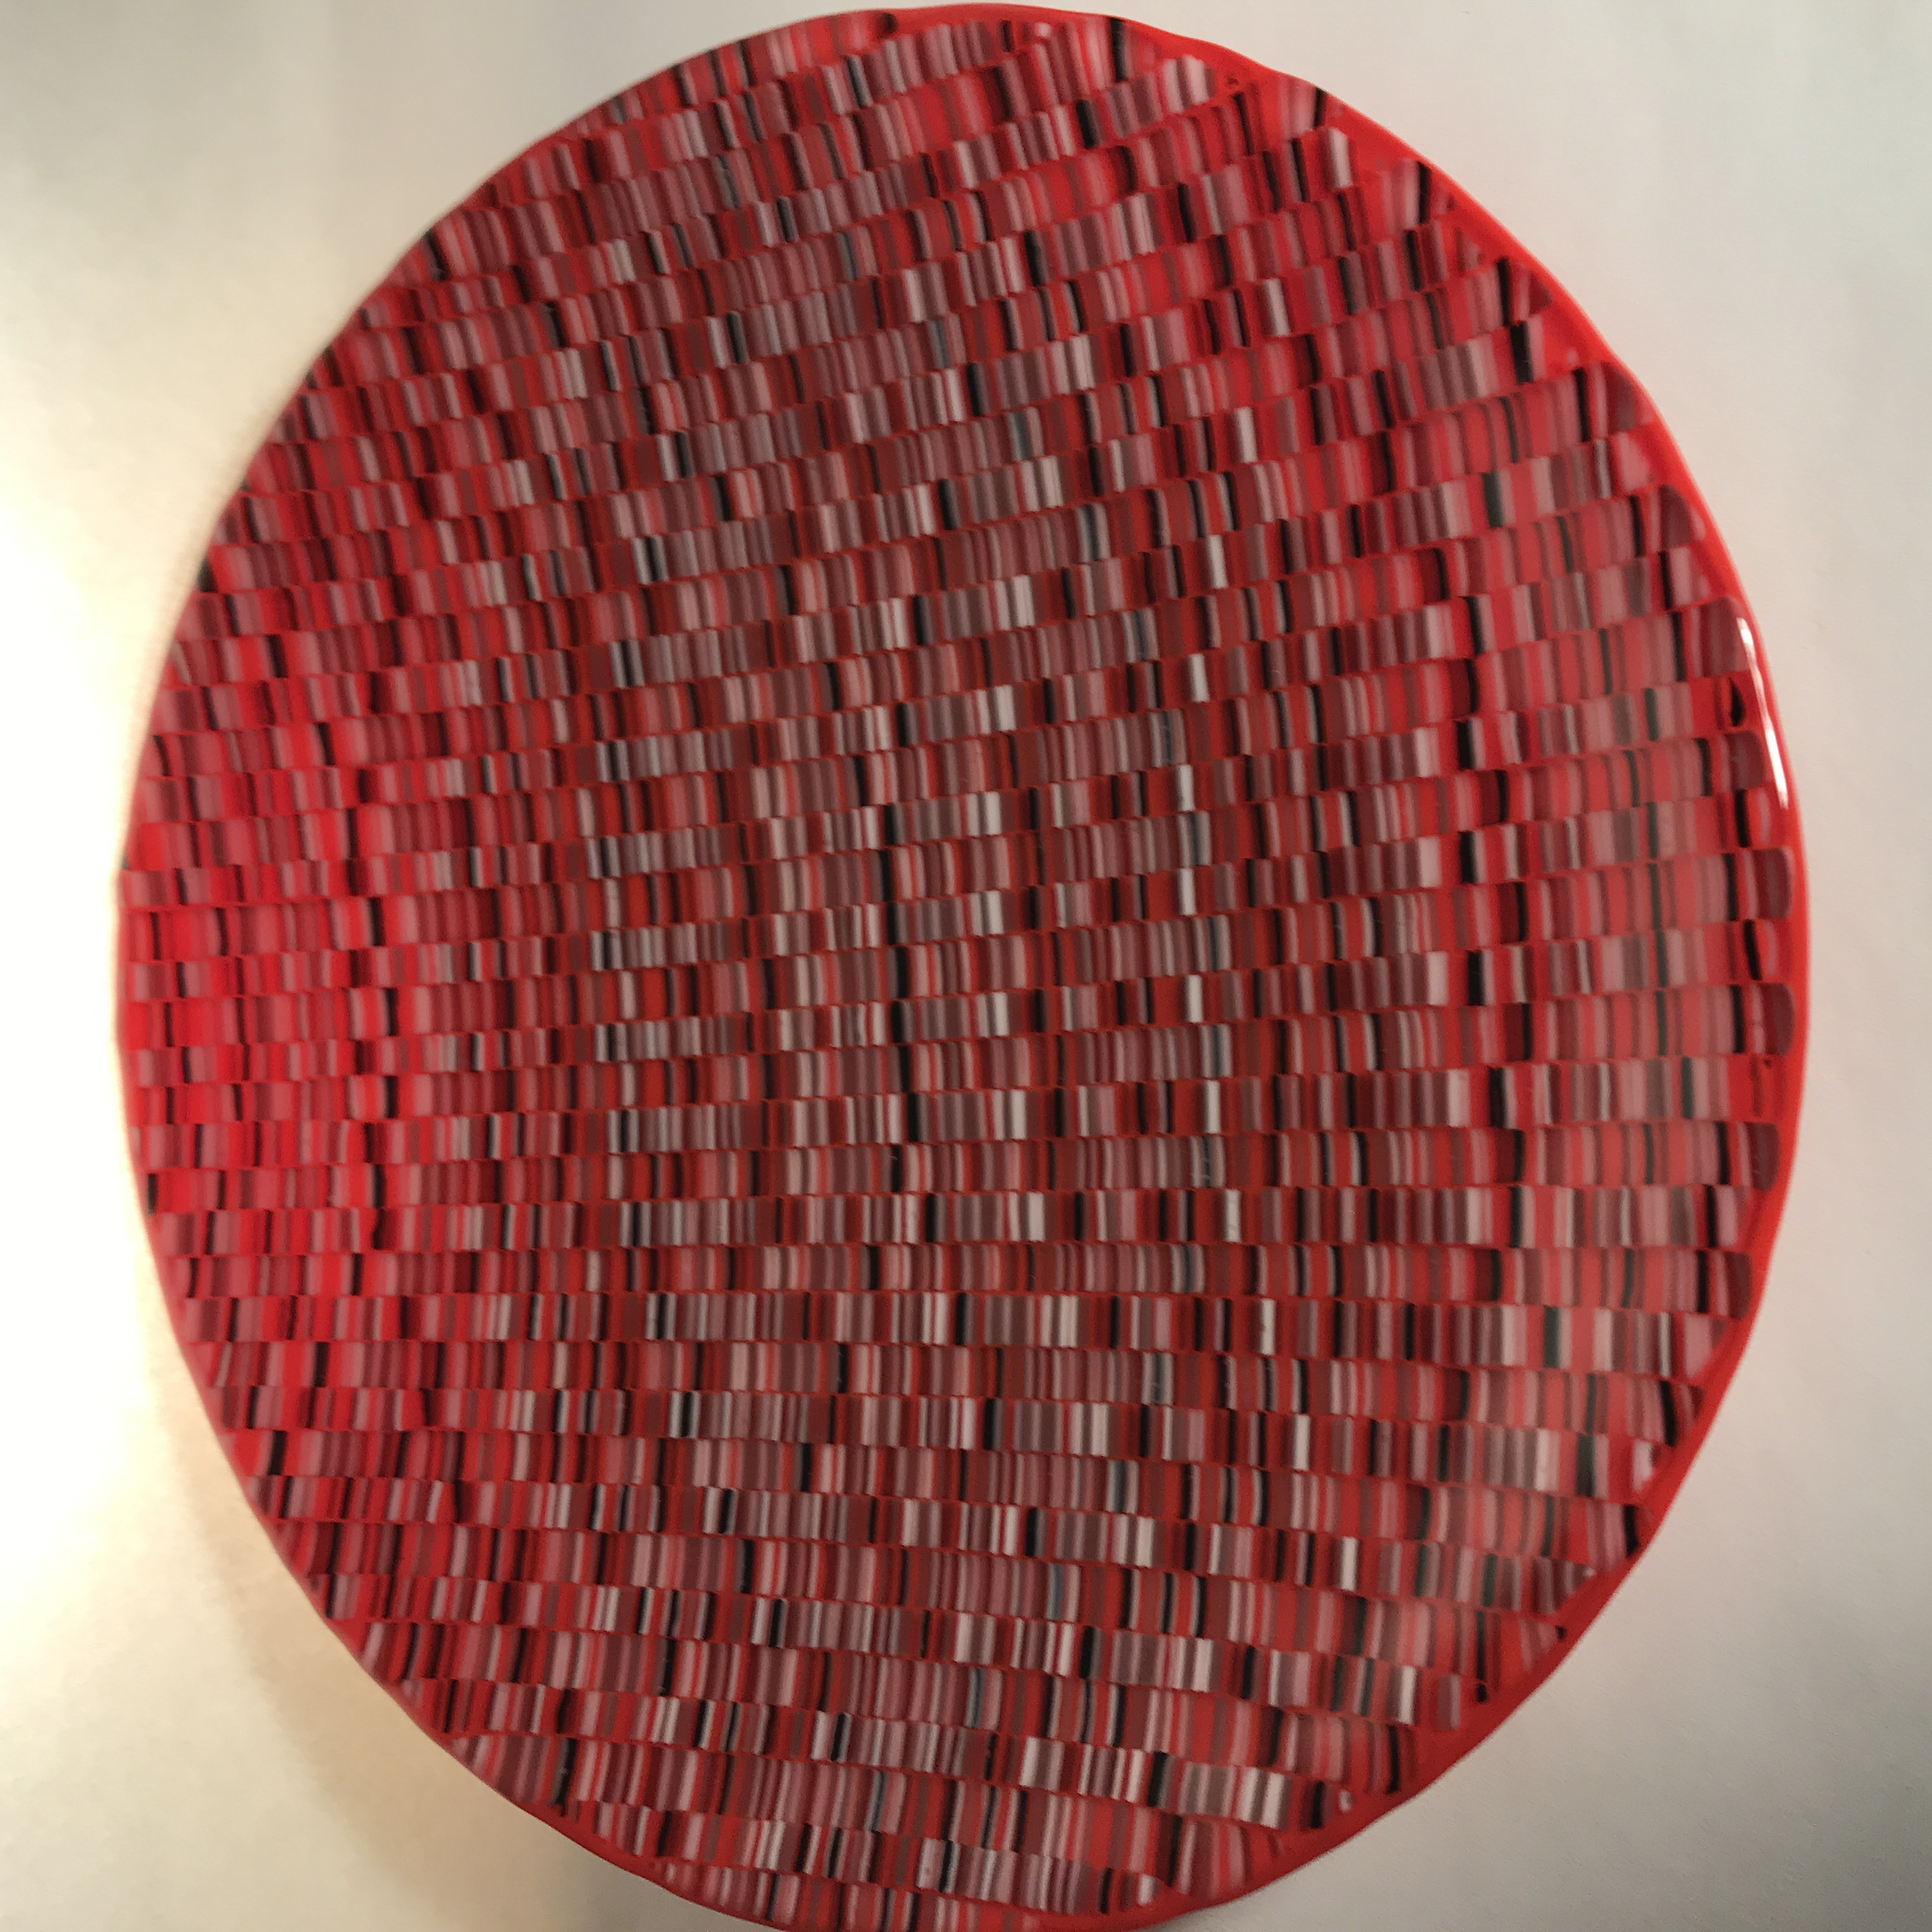 Large red bowl by Jill Bagnall